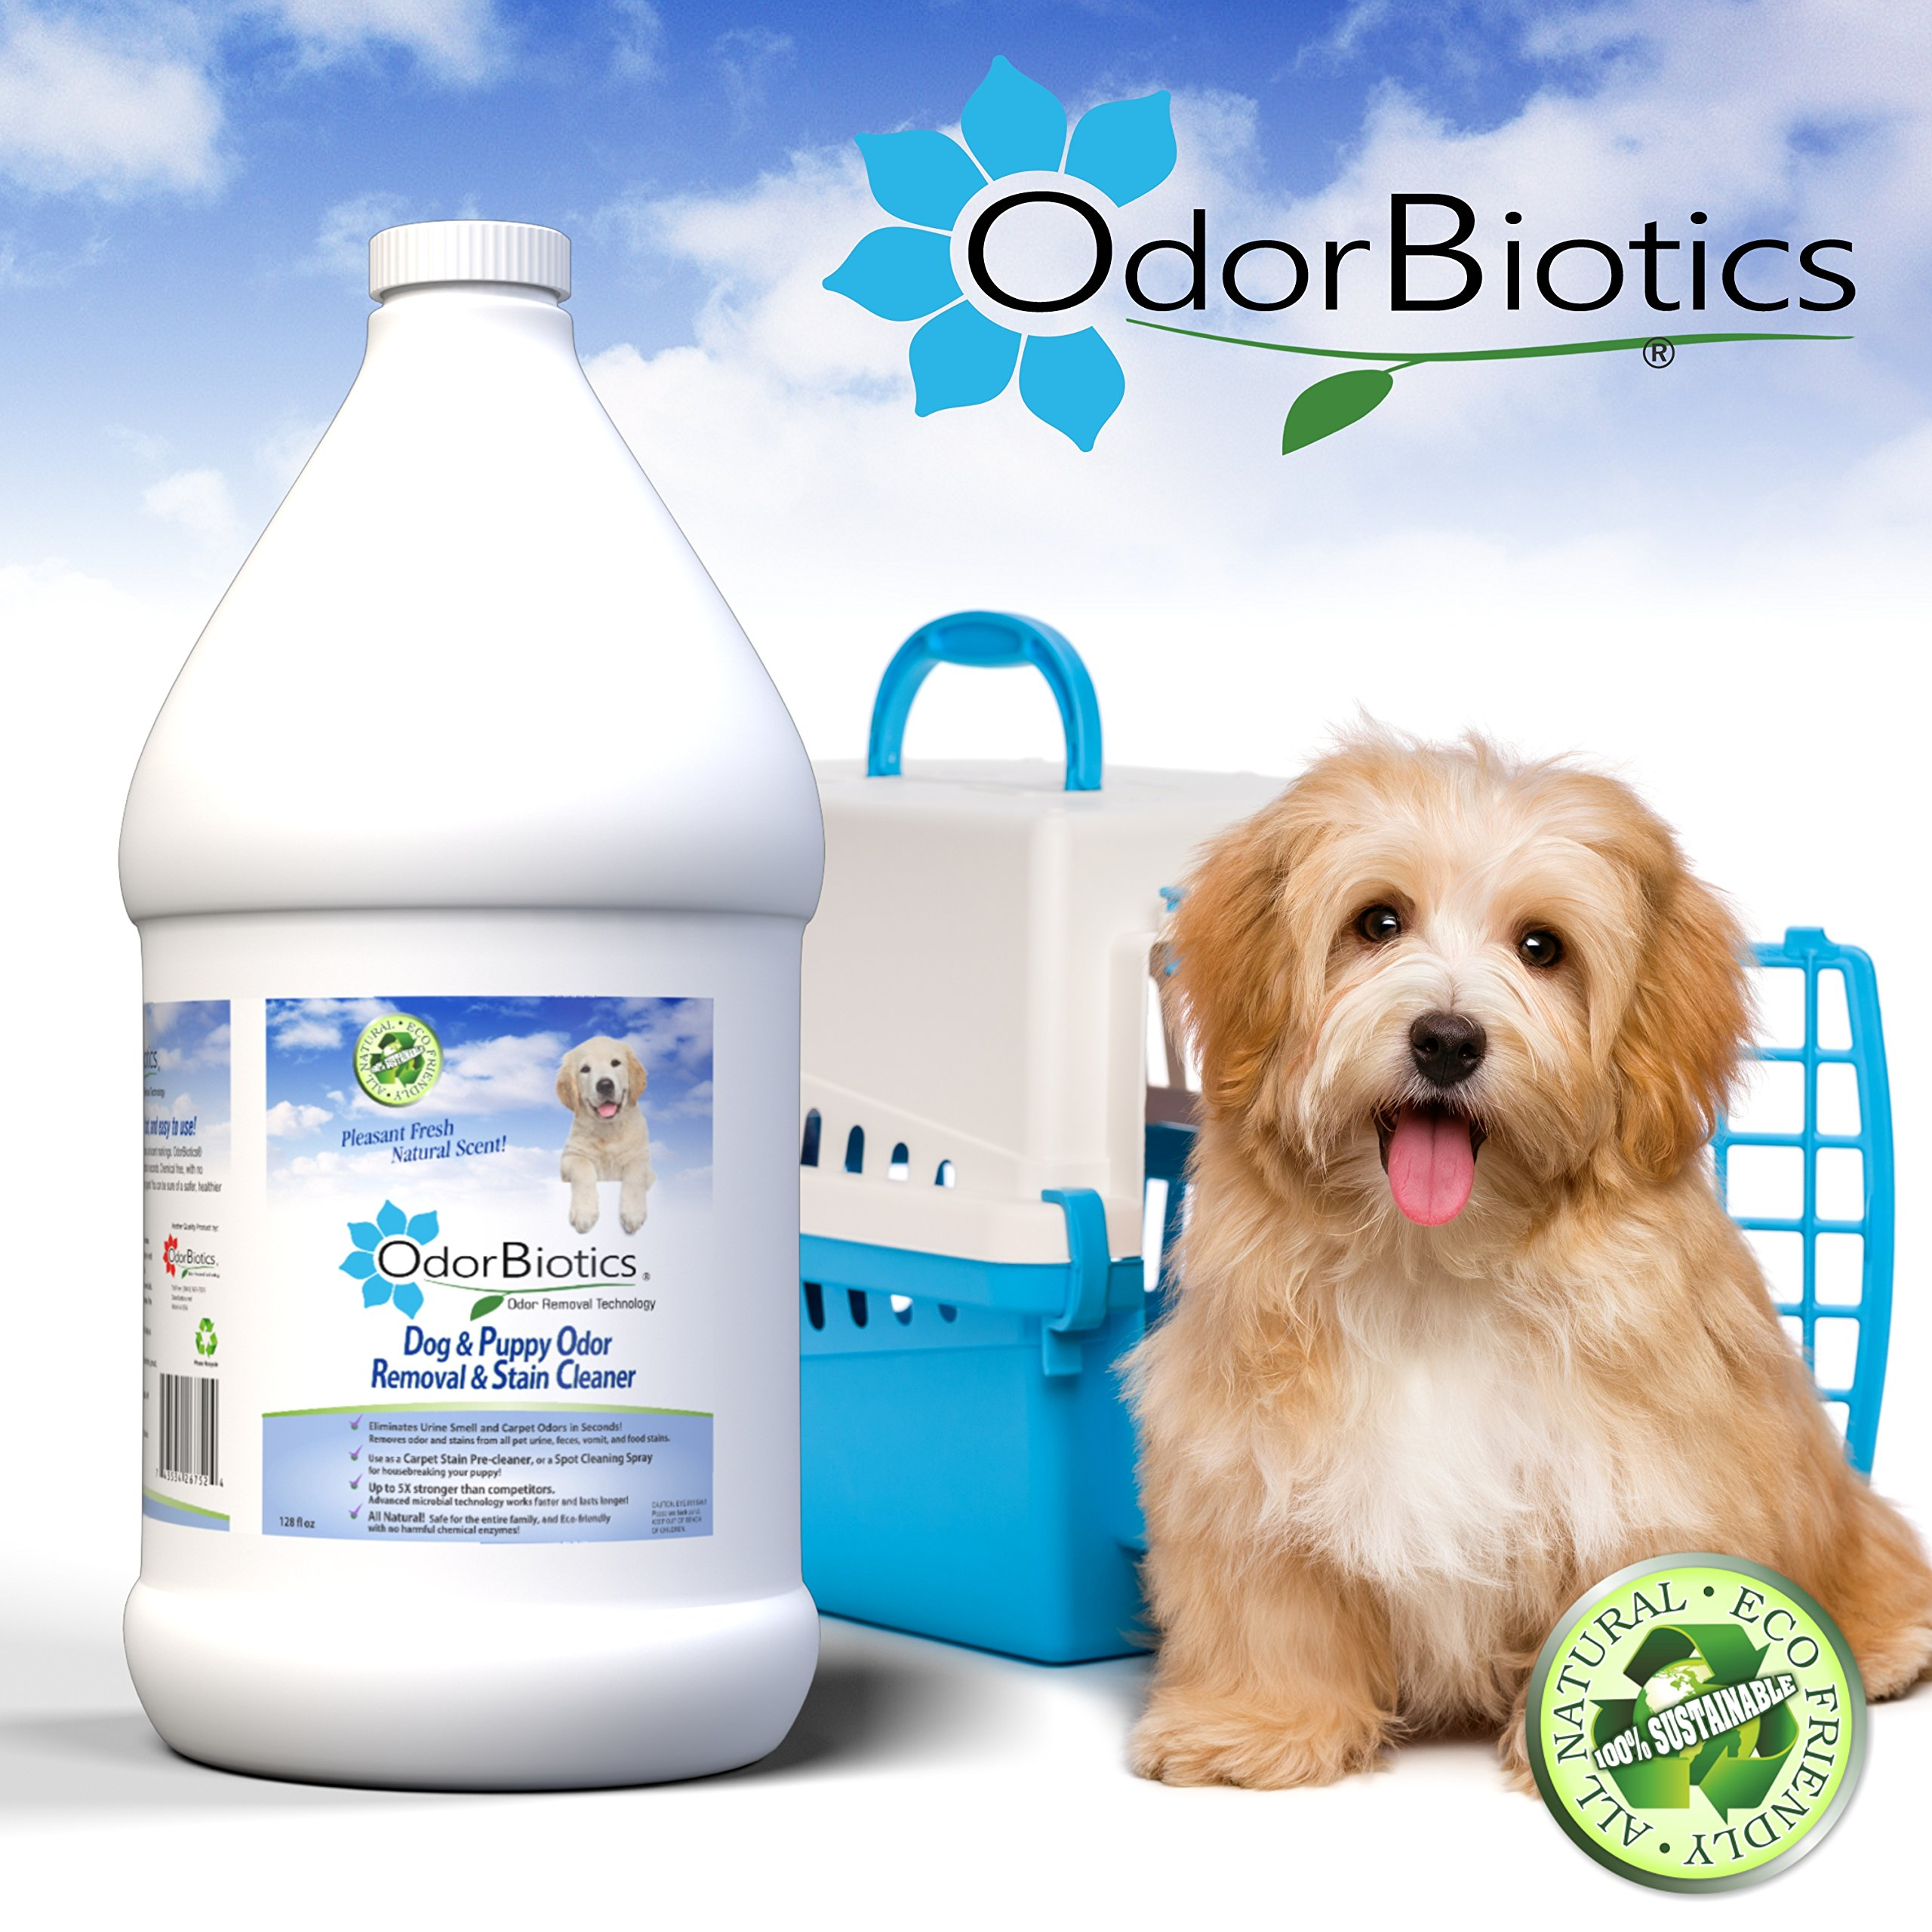 OdorBiotics Pet Stain & Odor Remover for Dog Beds, Playpens, Crates, Carriers, Kennels, Clothes, Puppy Toys, Eliminate Urine Smell on Carpet, Rugs, Hardwood Floors, Sofa Fabric, 128 oz Economy Size by OdorBiotics (Image #2)